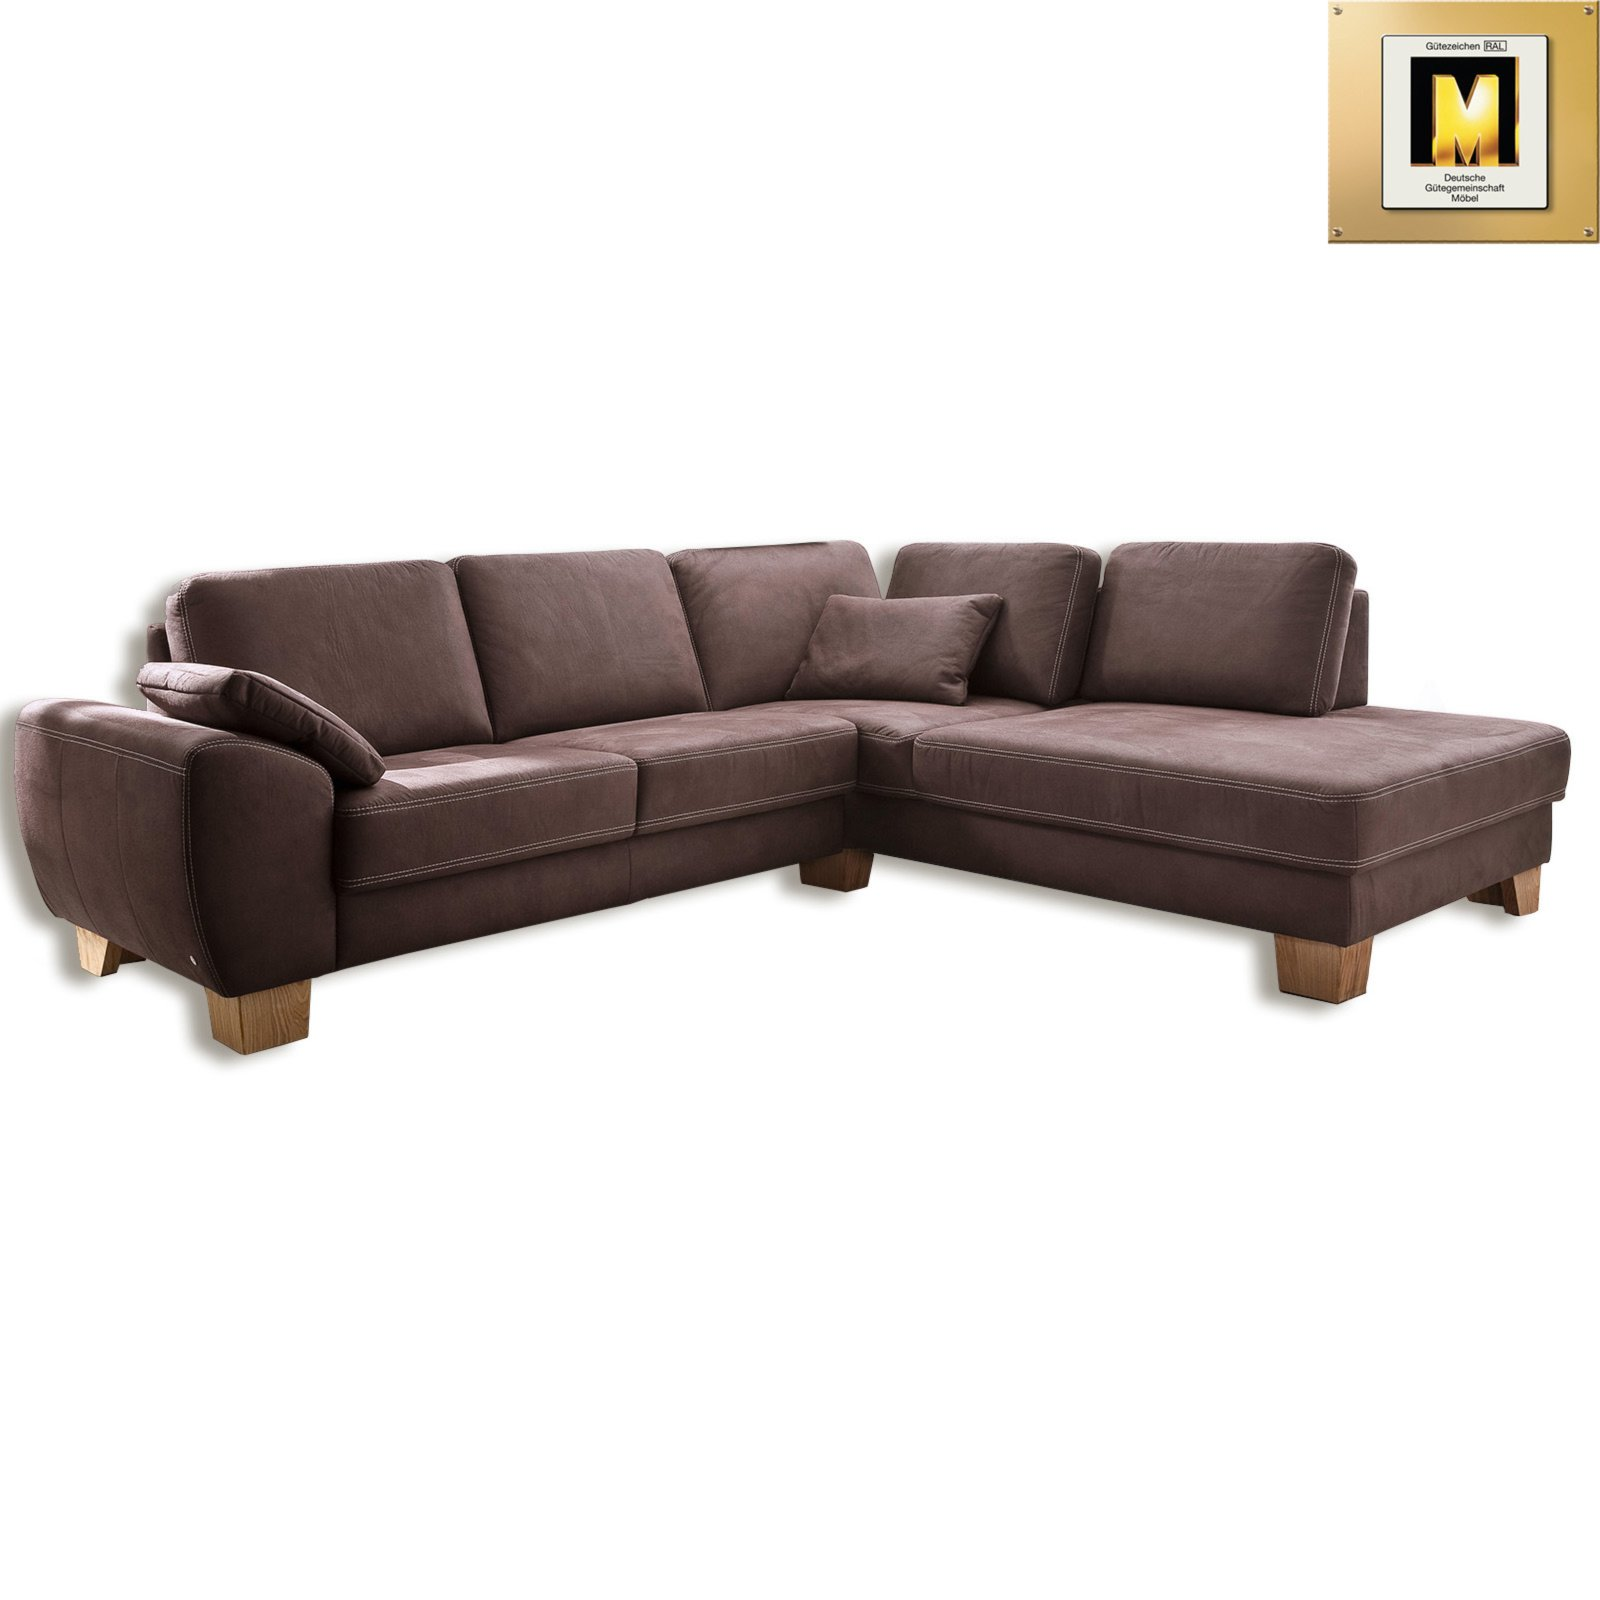 ecksofa braun microfaser ecksofas l form sofas couches m bel roller m belhaus. Black Bedroom Furniture Sets. Home Design Ideas